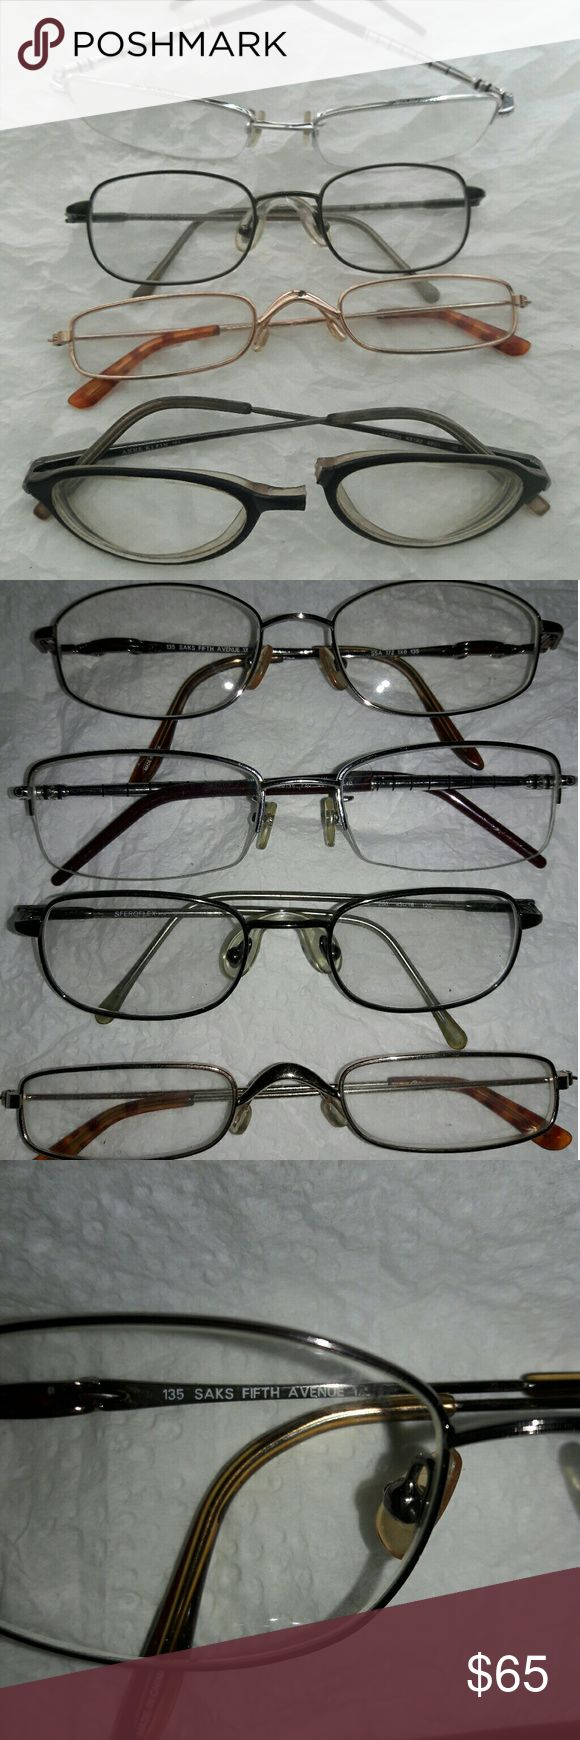 Vintage Designer Eyeglasses & Frames 5 pairs in good preowned condition...all prescription strength...(sorry don't know strength)...Anne Klein's need gluing together...gold pair are Readers, 1.00+, bronze pair are Saks Fifth Avenue, Burgundy are genuine Montblancs, and gunmetal are Sferoflex frames... Estate sale find...sold as is... Montblanc Accessories Glasses